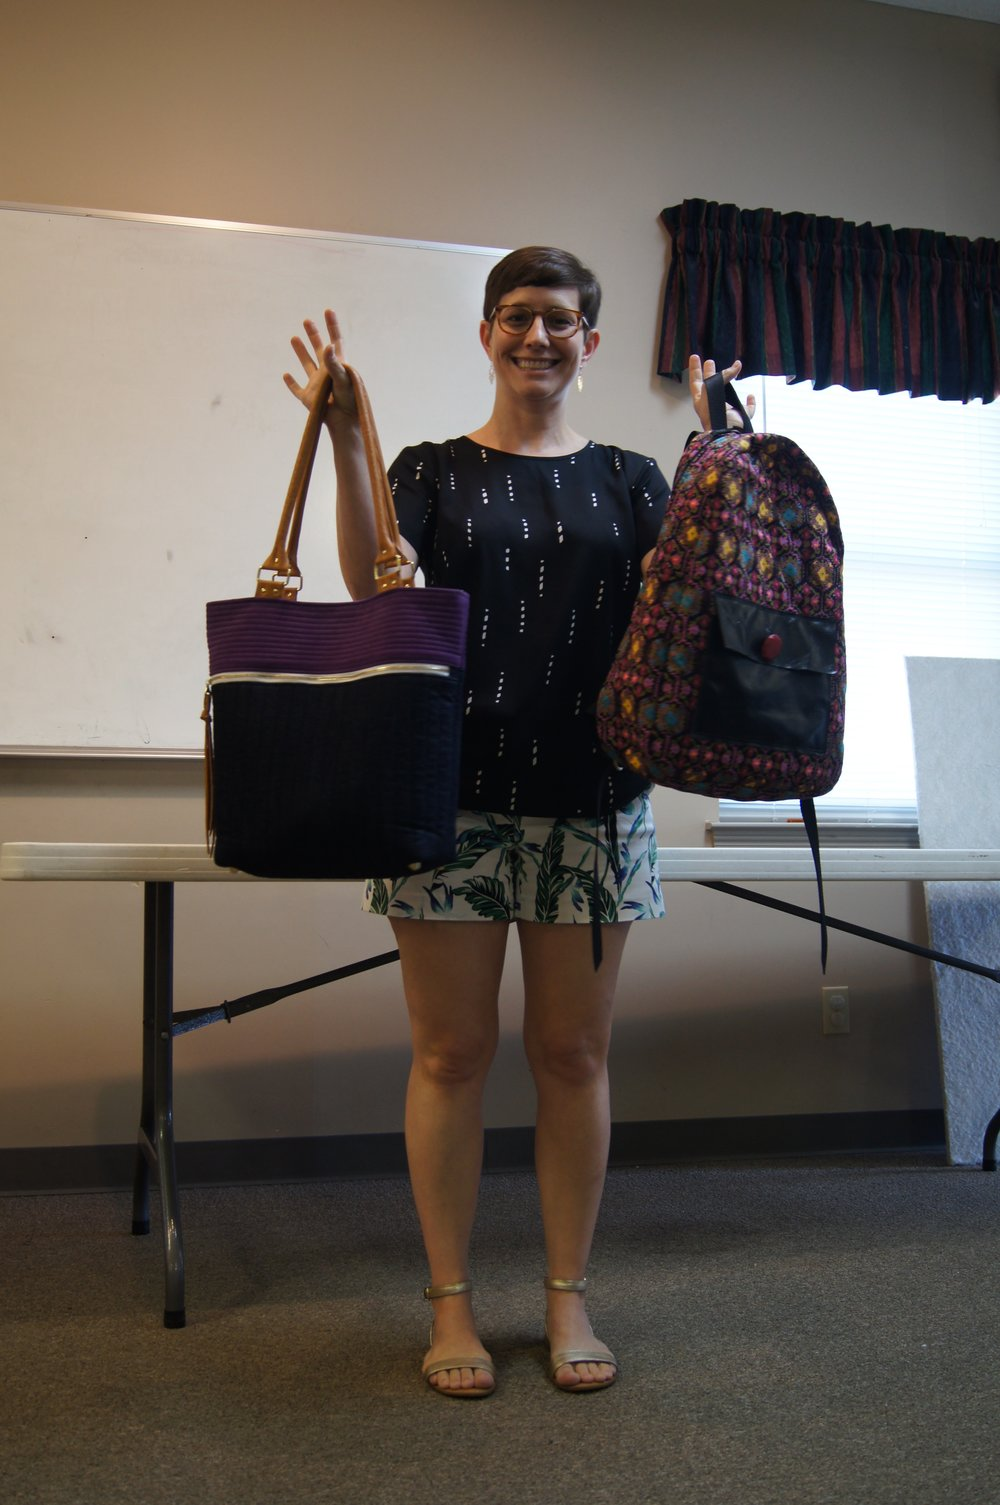 Kelly made a Caravan Tote by Noodlehead (left) and a backpack.